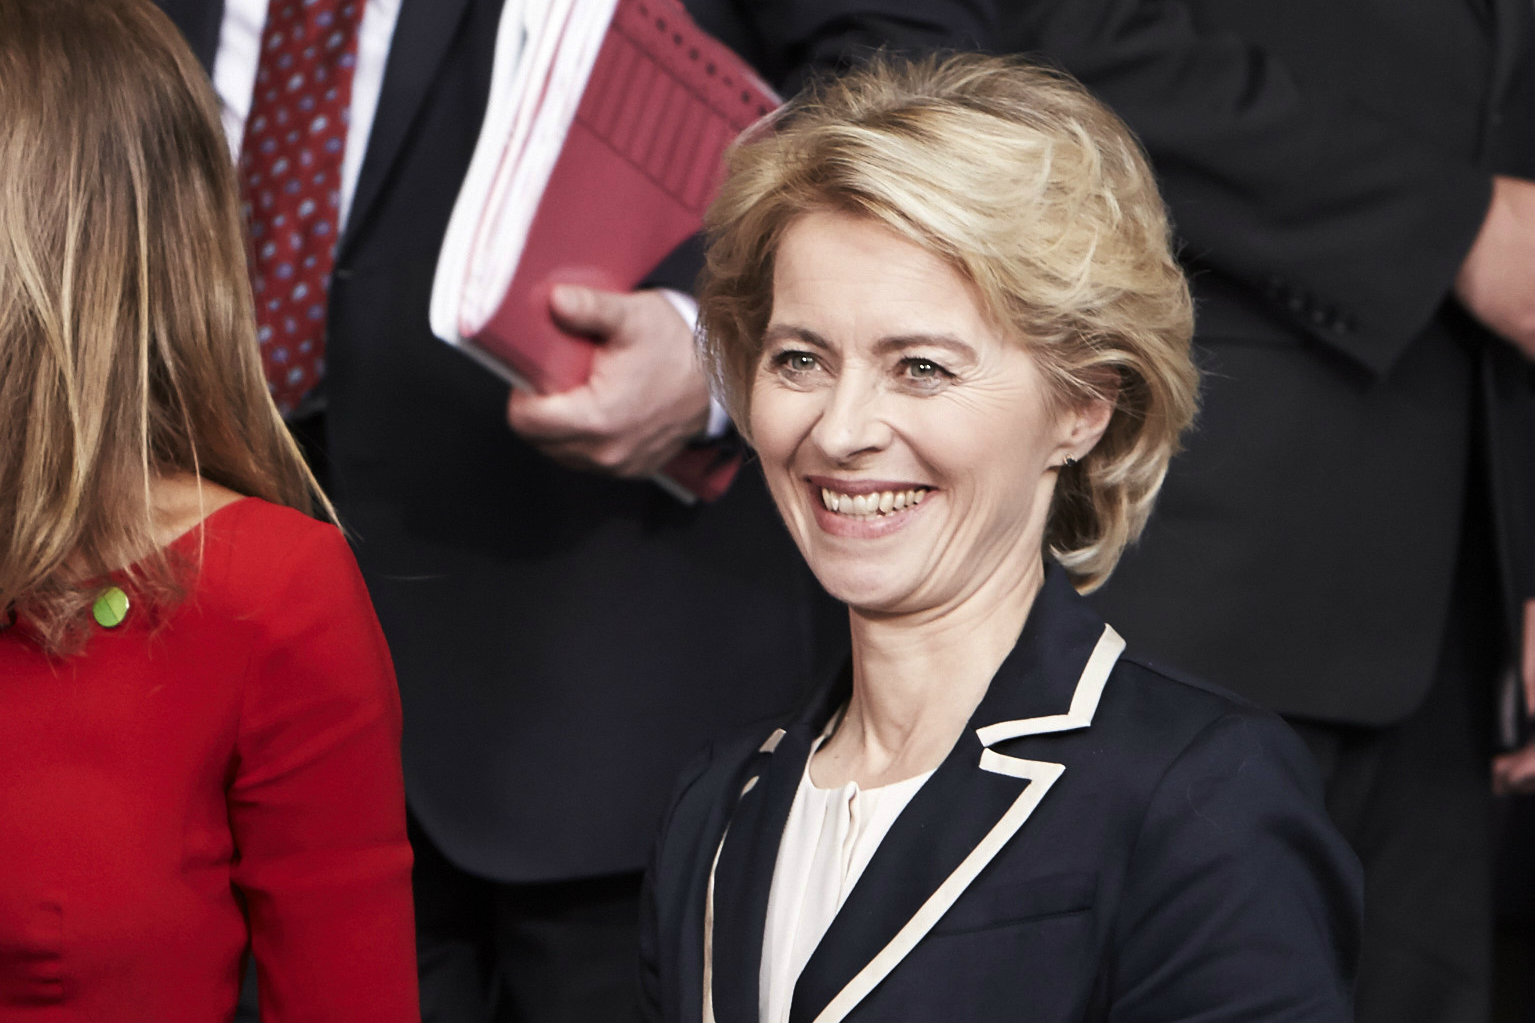 German Defence Minister Ursula von der Leyen is likely to be Juncker's top choice to fill Germany's Commissioner post. [The Council of the European Union]